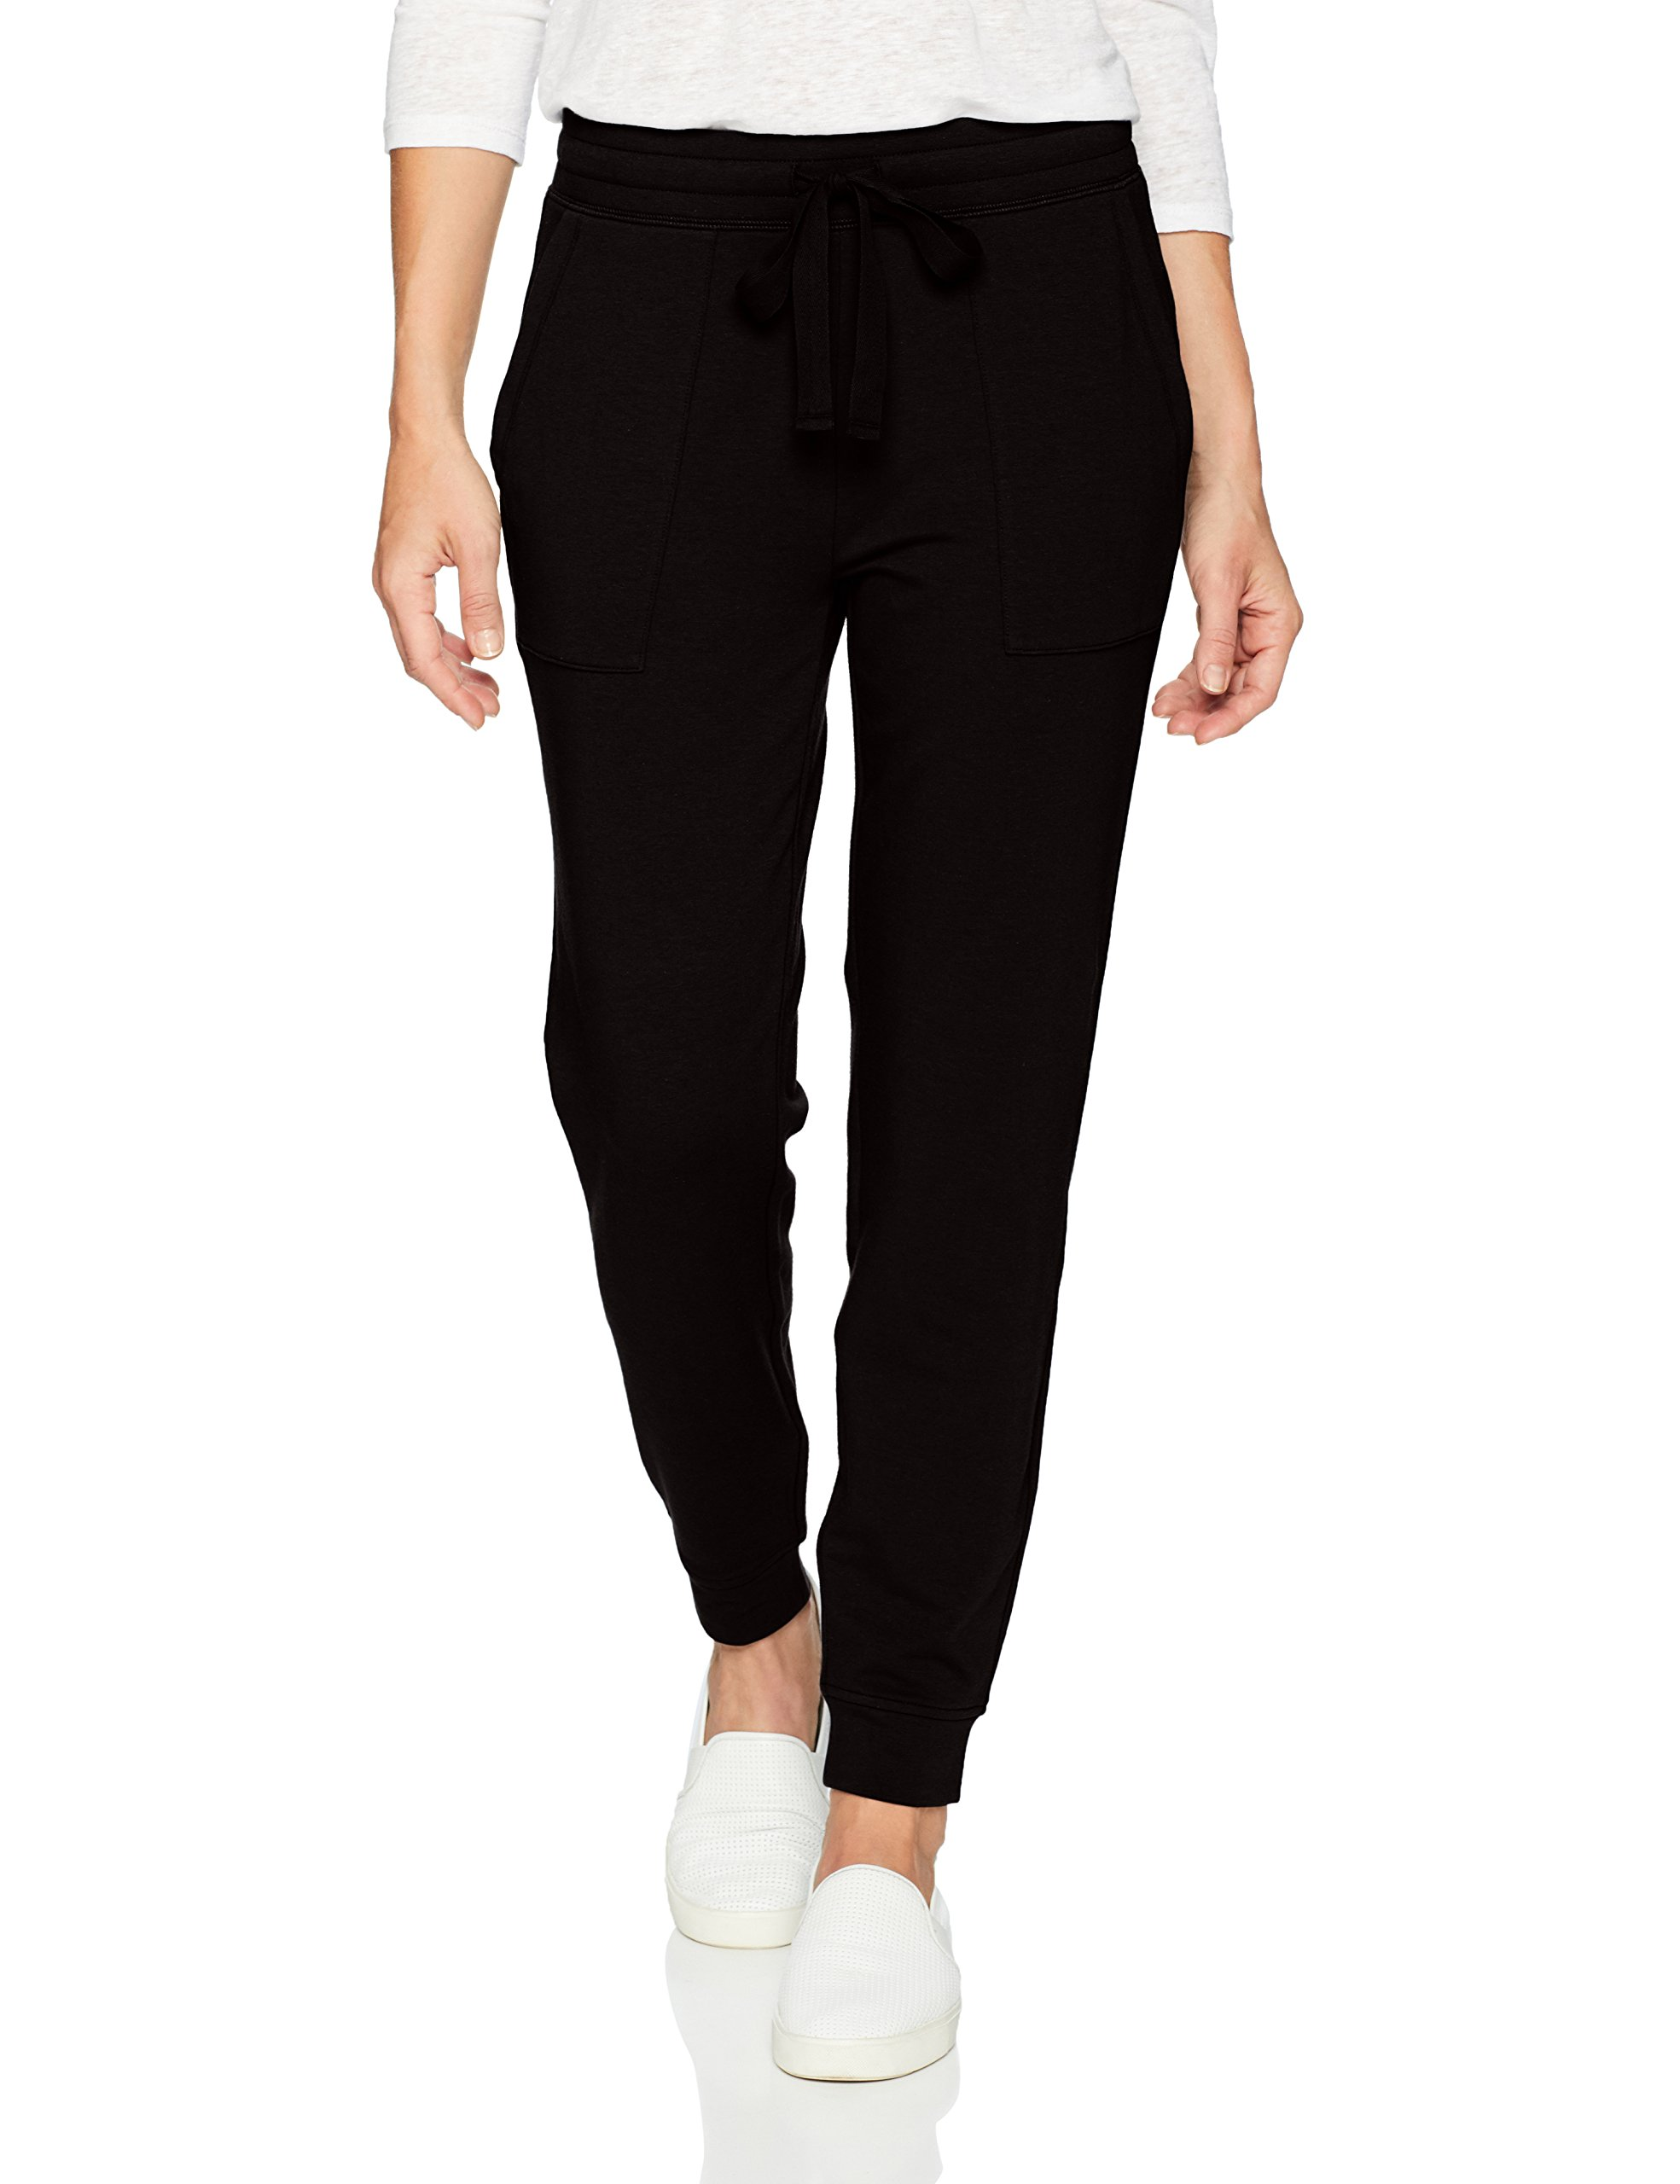 Daily Ritual Women's Terry Cotton and Modal Patch-Pocket Jogger Pant, Black, X-Large